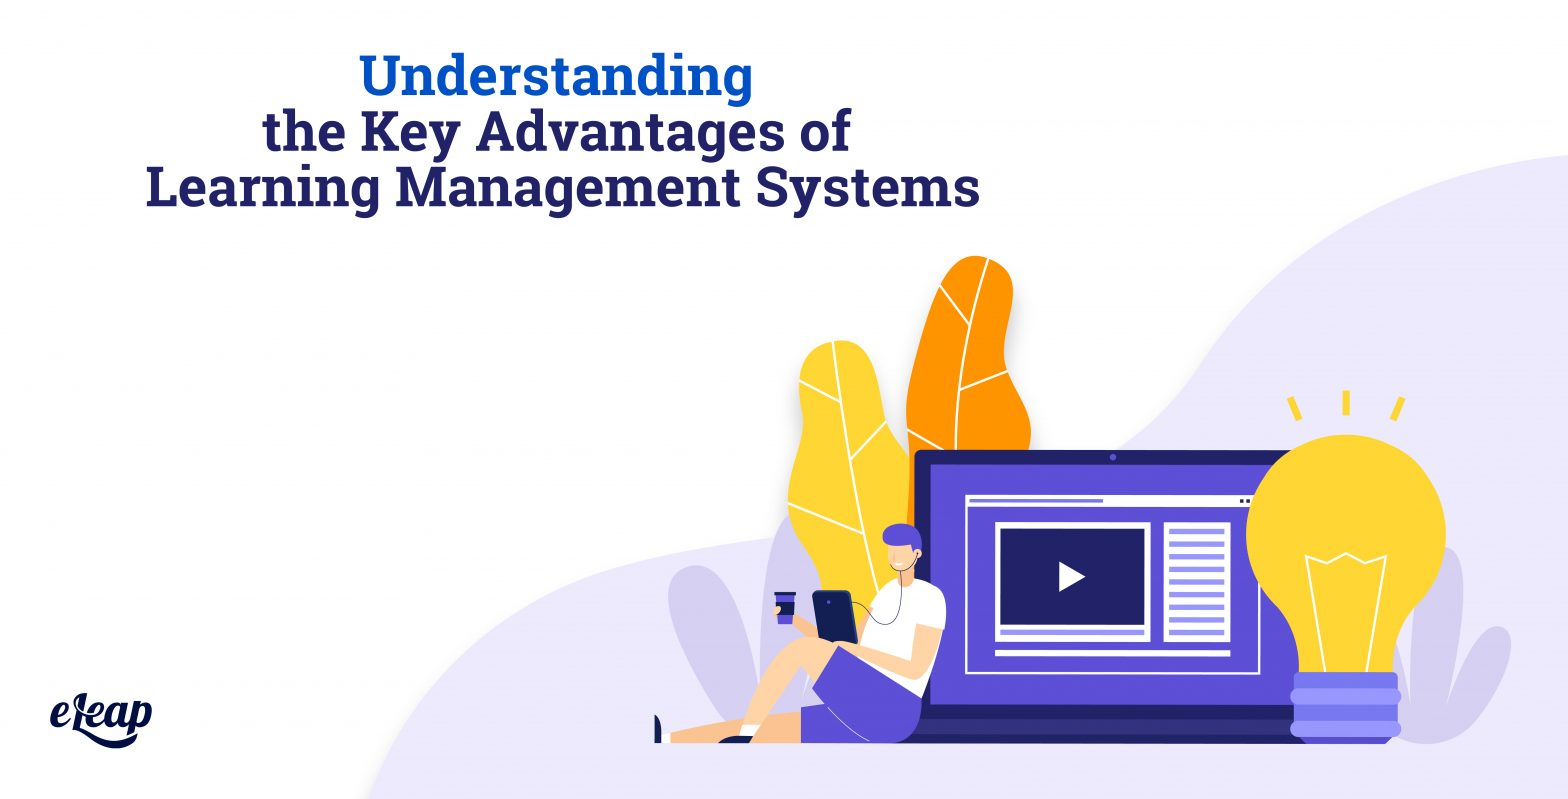 Understanding the Key Advantages of Learning Management Systems